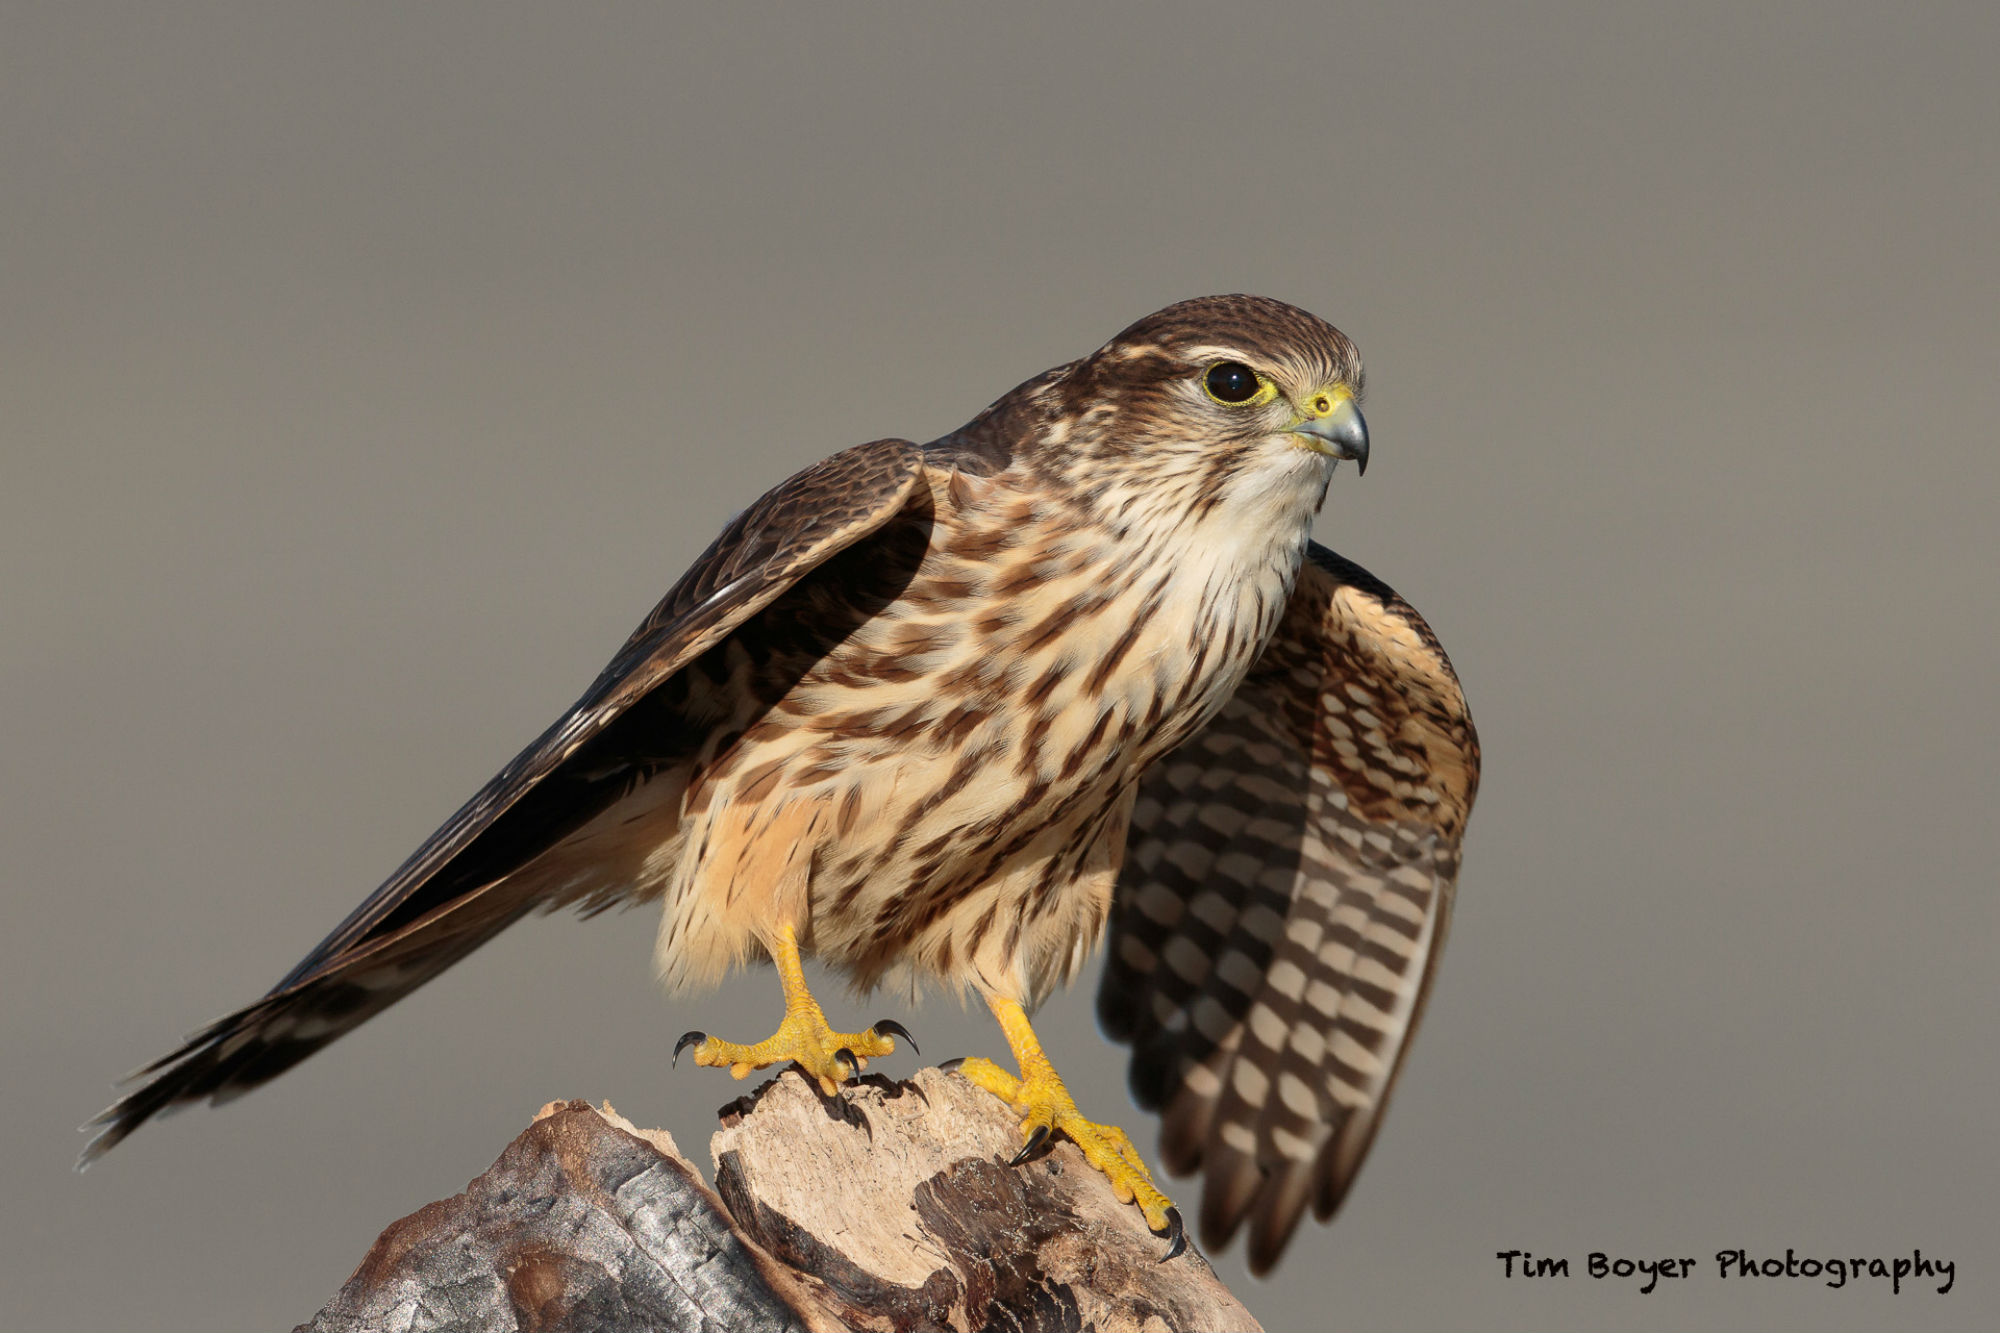 bird photography tips tim boyer image